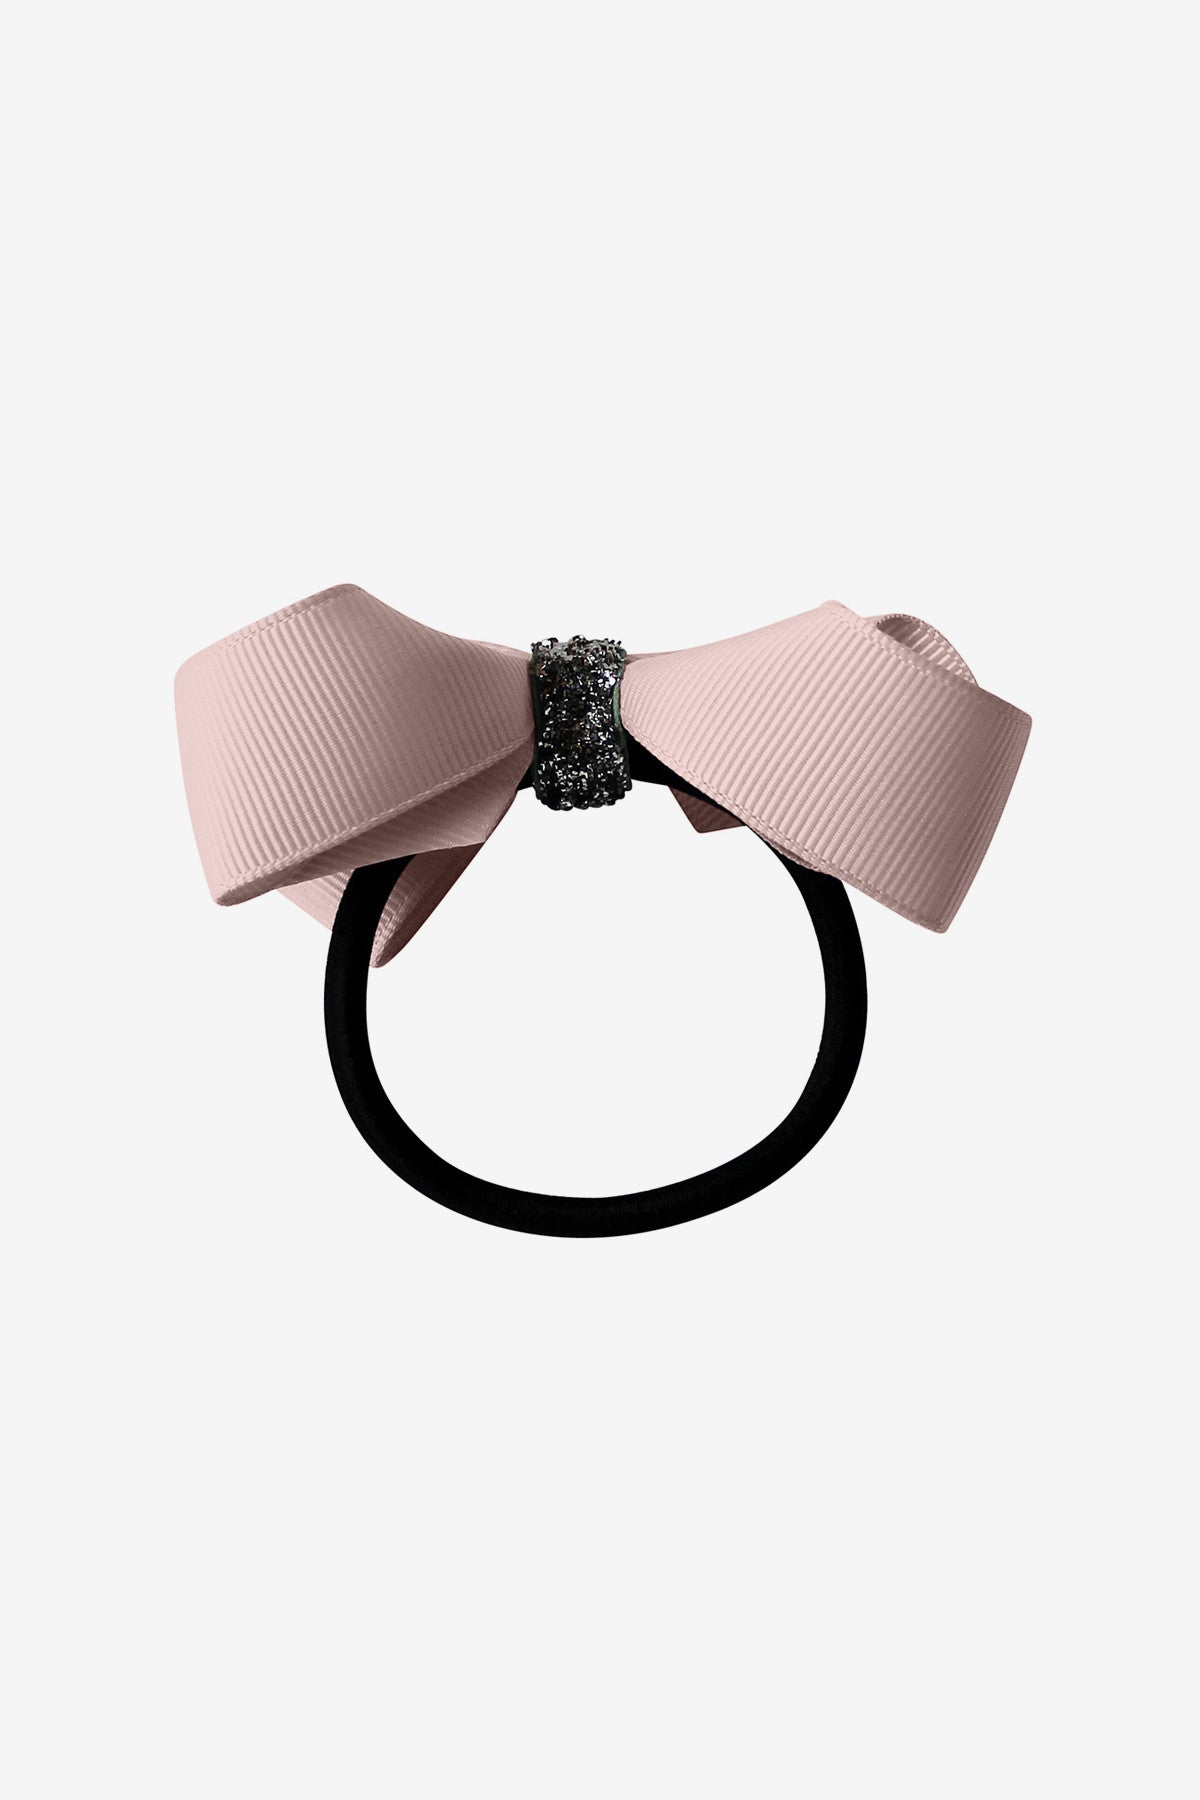 eafc0cc779c5 Black Velvet Bow Hair Clip $ 13.25. Glitter Boutique Bow Elastic